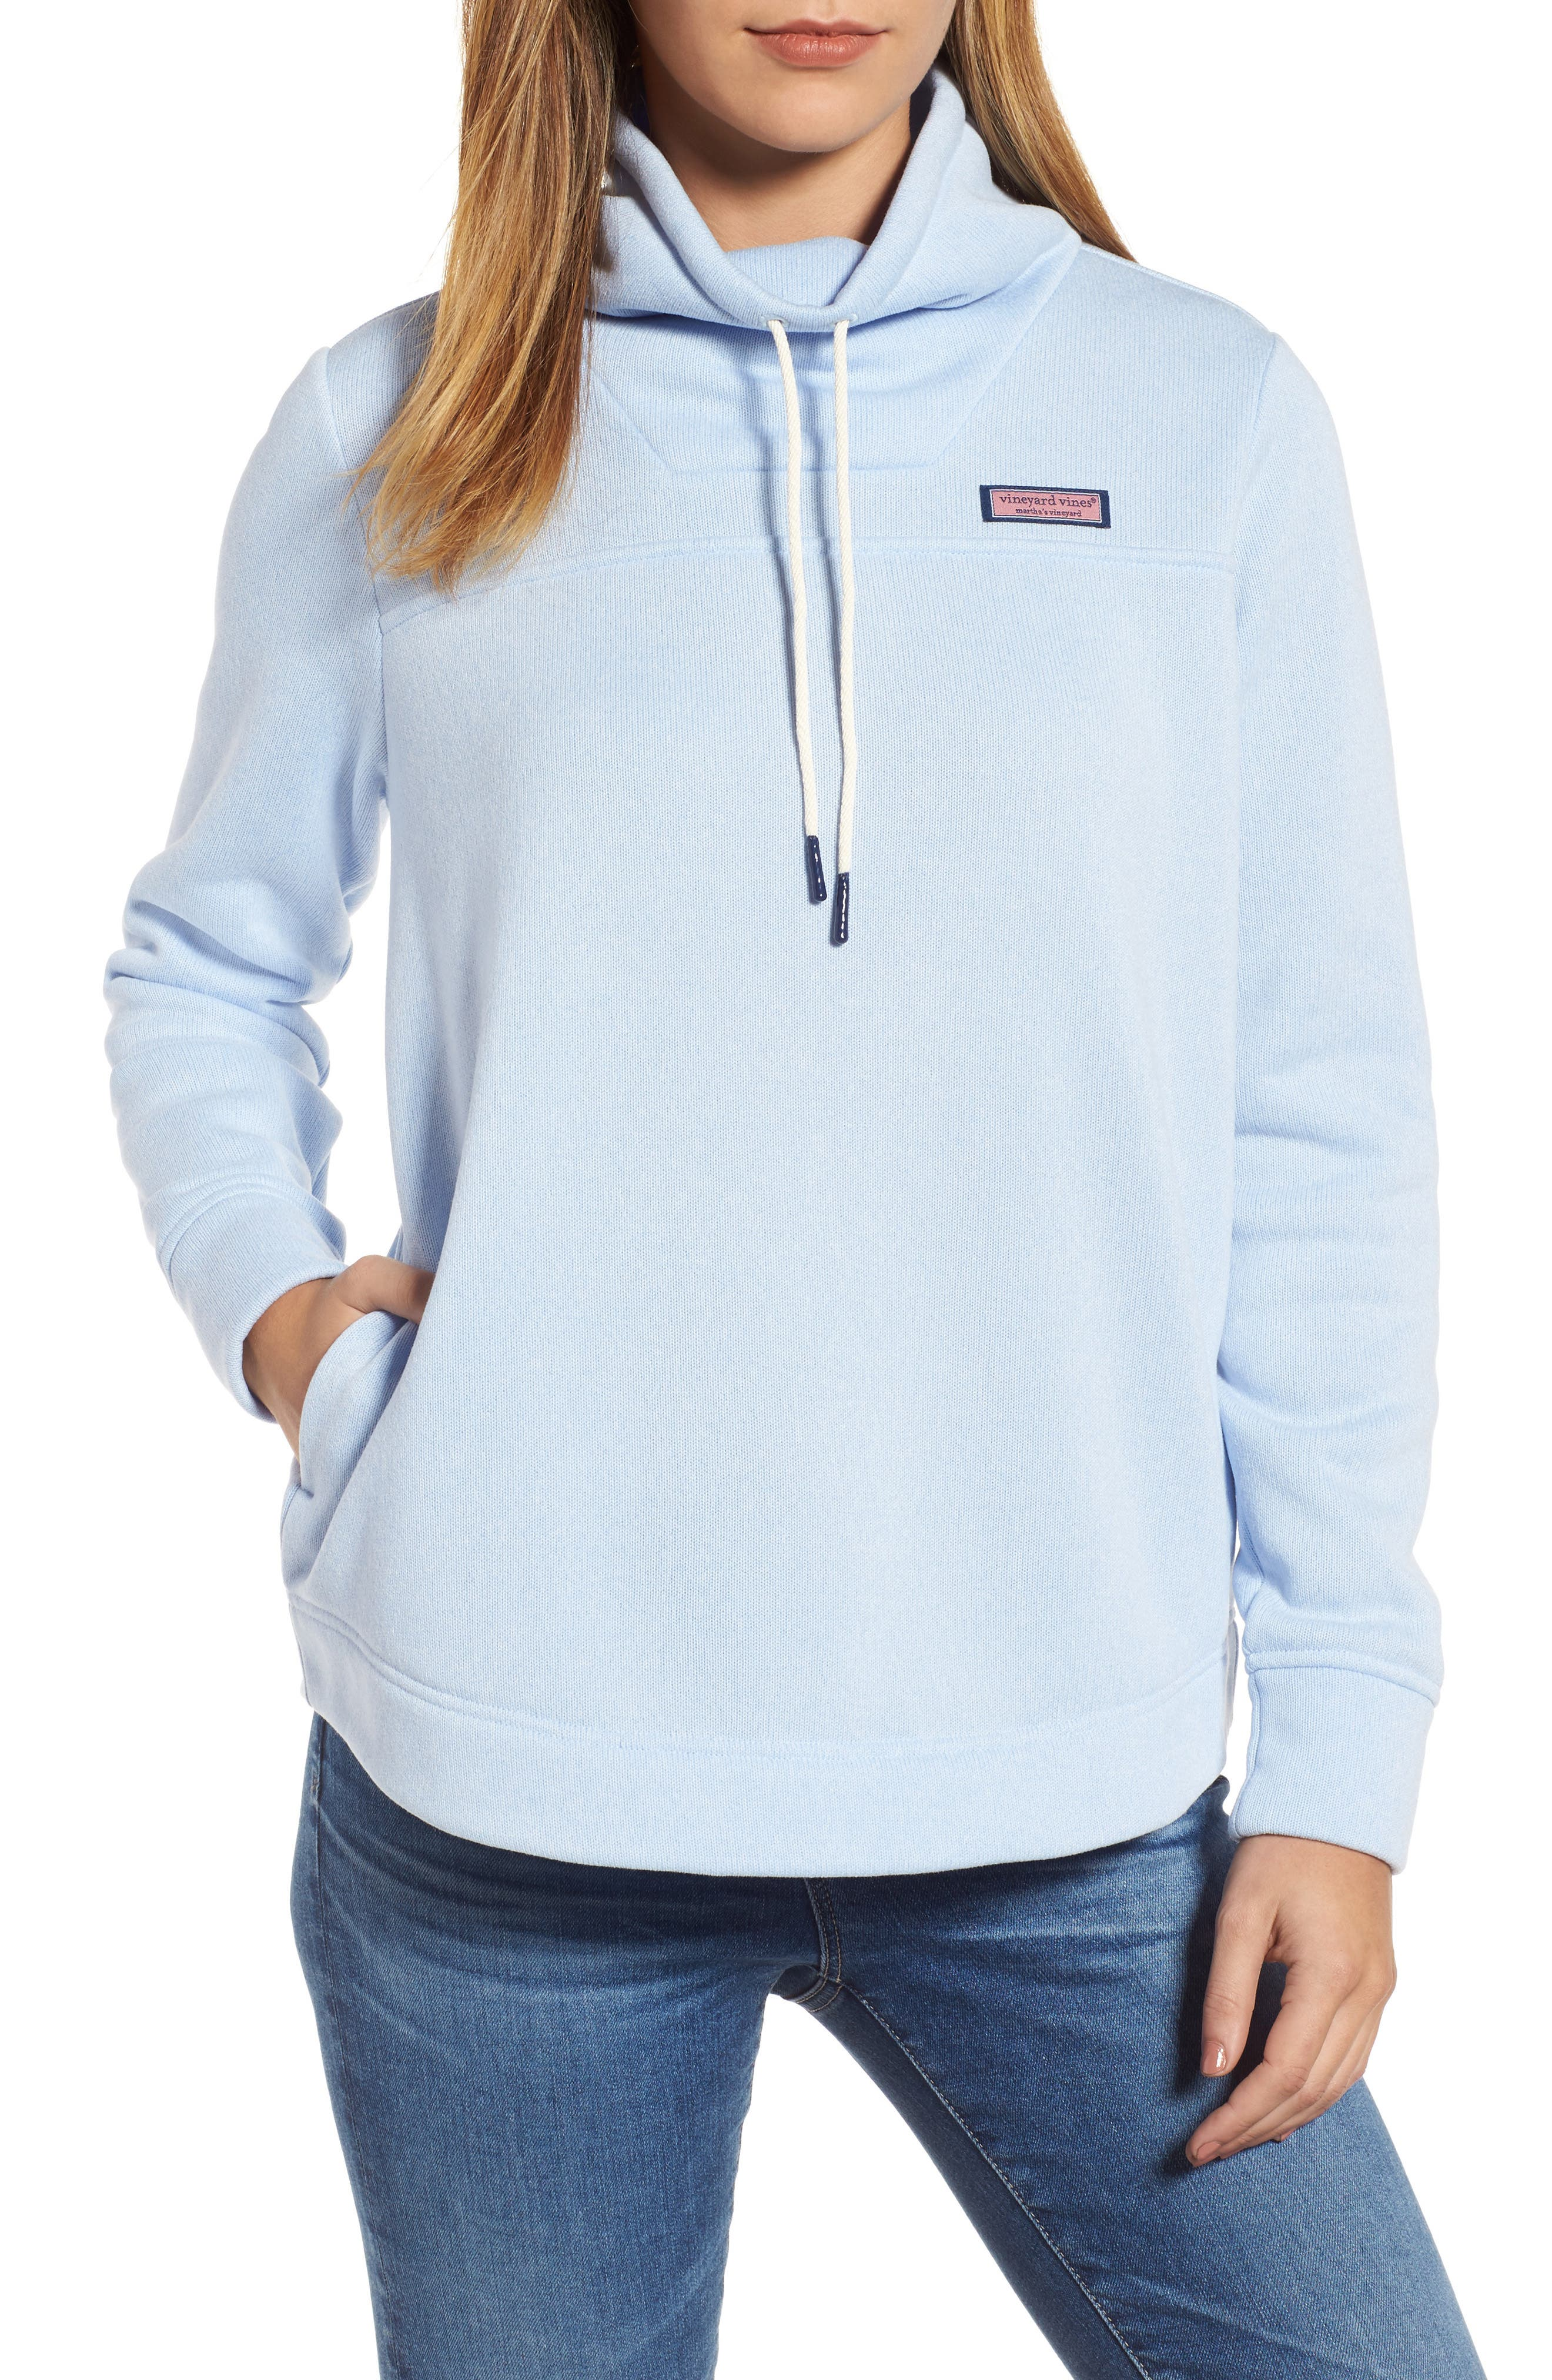 vineyard vines Sweater Fleece Knit Hoodie